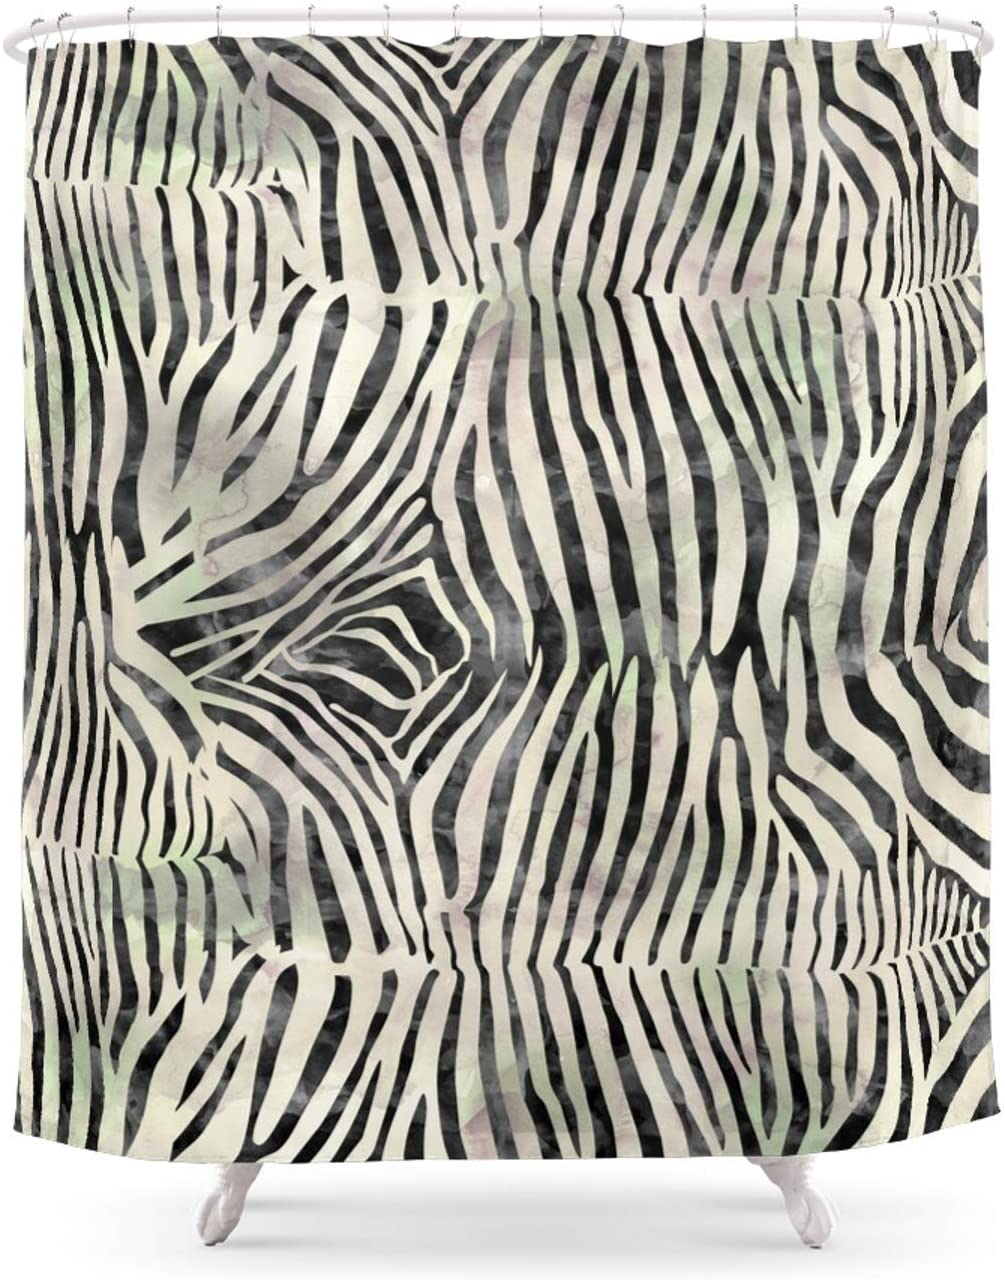 Max 40% OFF Society6 Zebra Print by Aloke New product Design on x - Shower Curtain 7 71